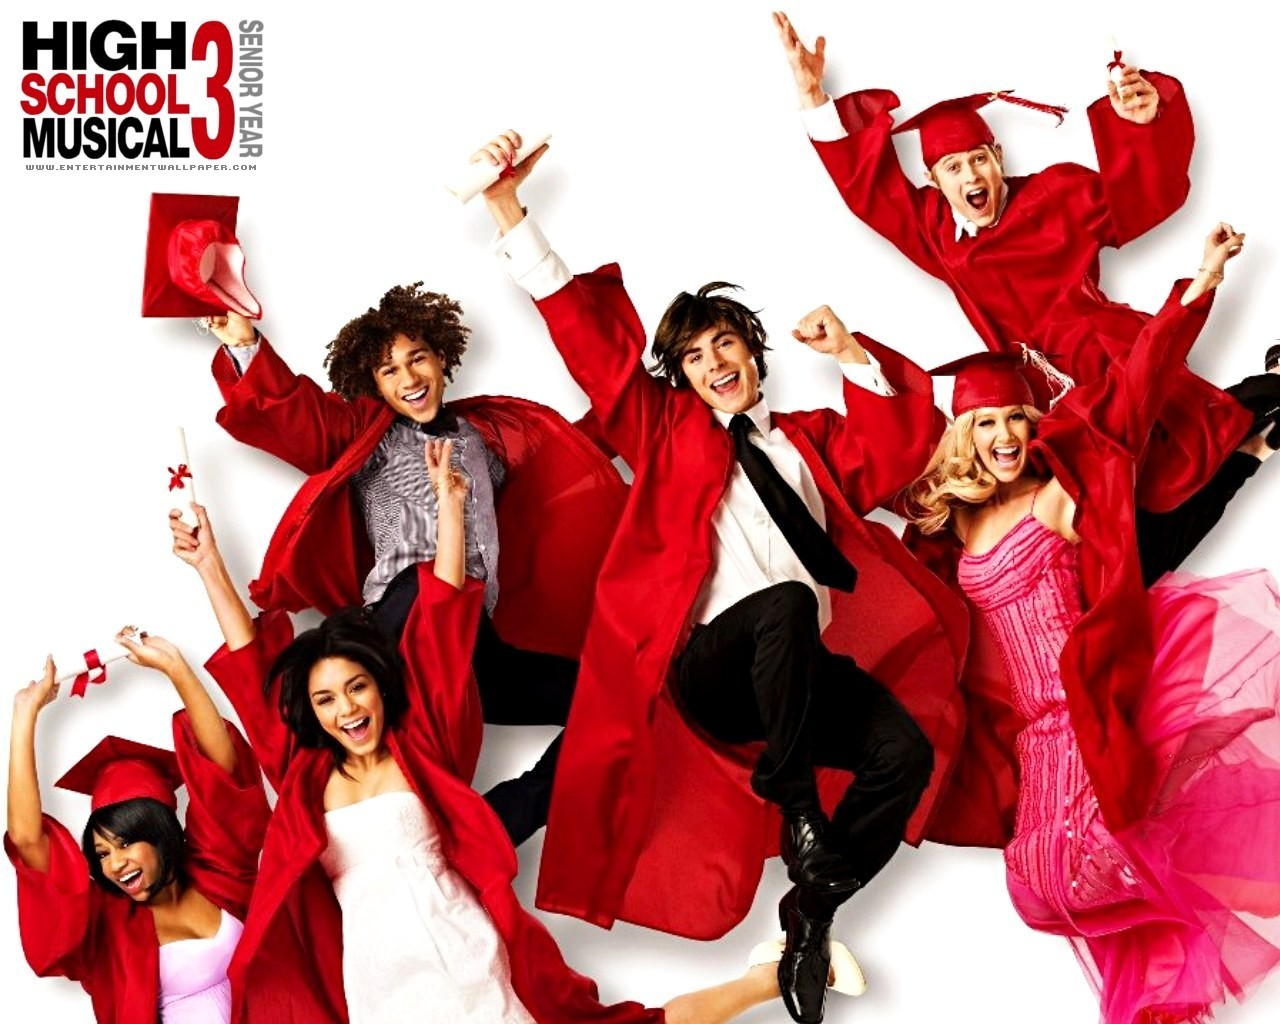 High School Musical 3 images HSm 3 HD wallpaper and background photos